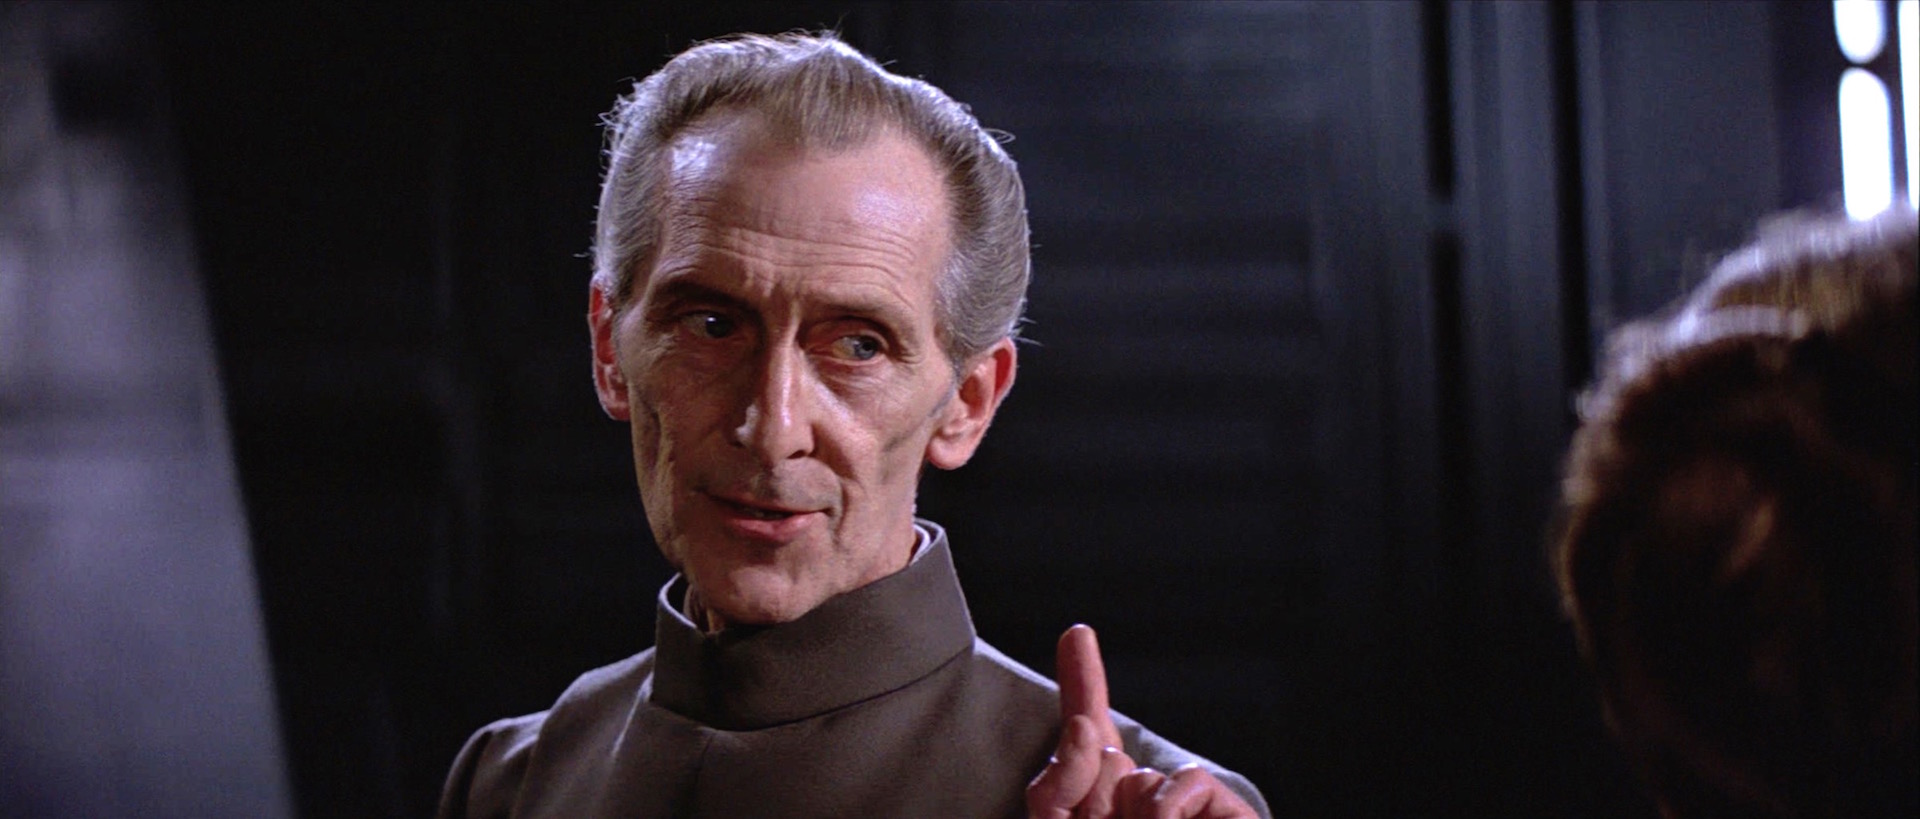 https://starwarsblog.starwars.com/wp-content/uploads/sites/6/2016/06/Tarkin-ep-4-2.jpg